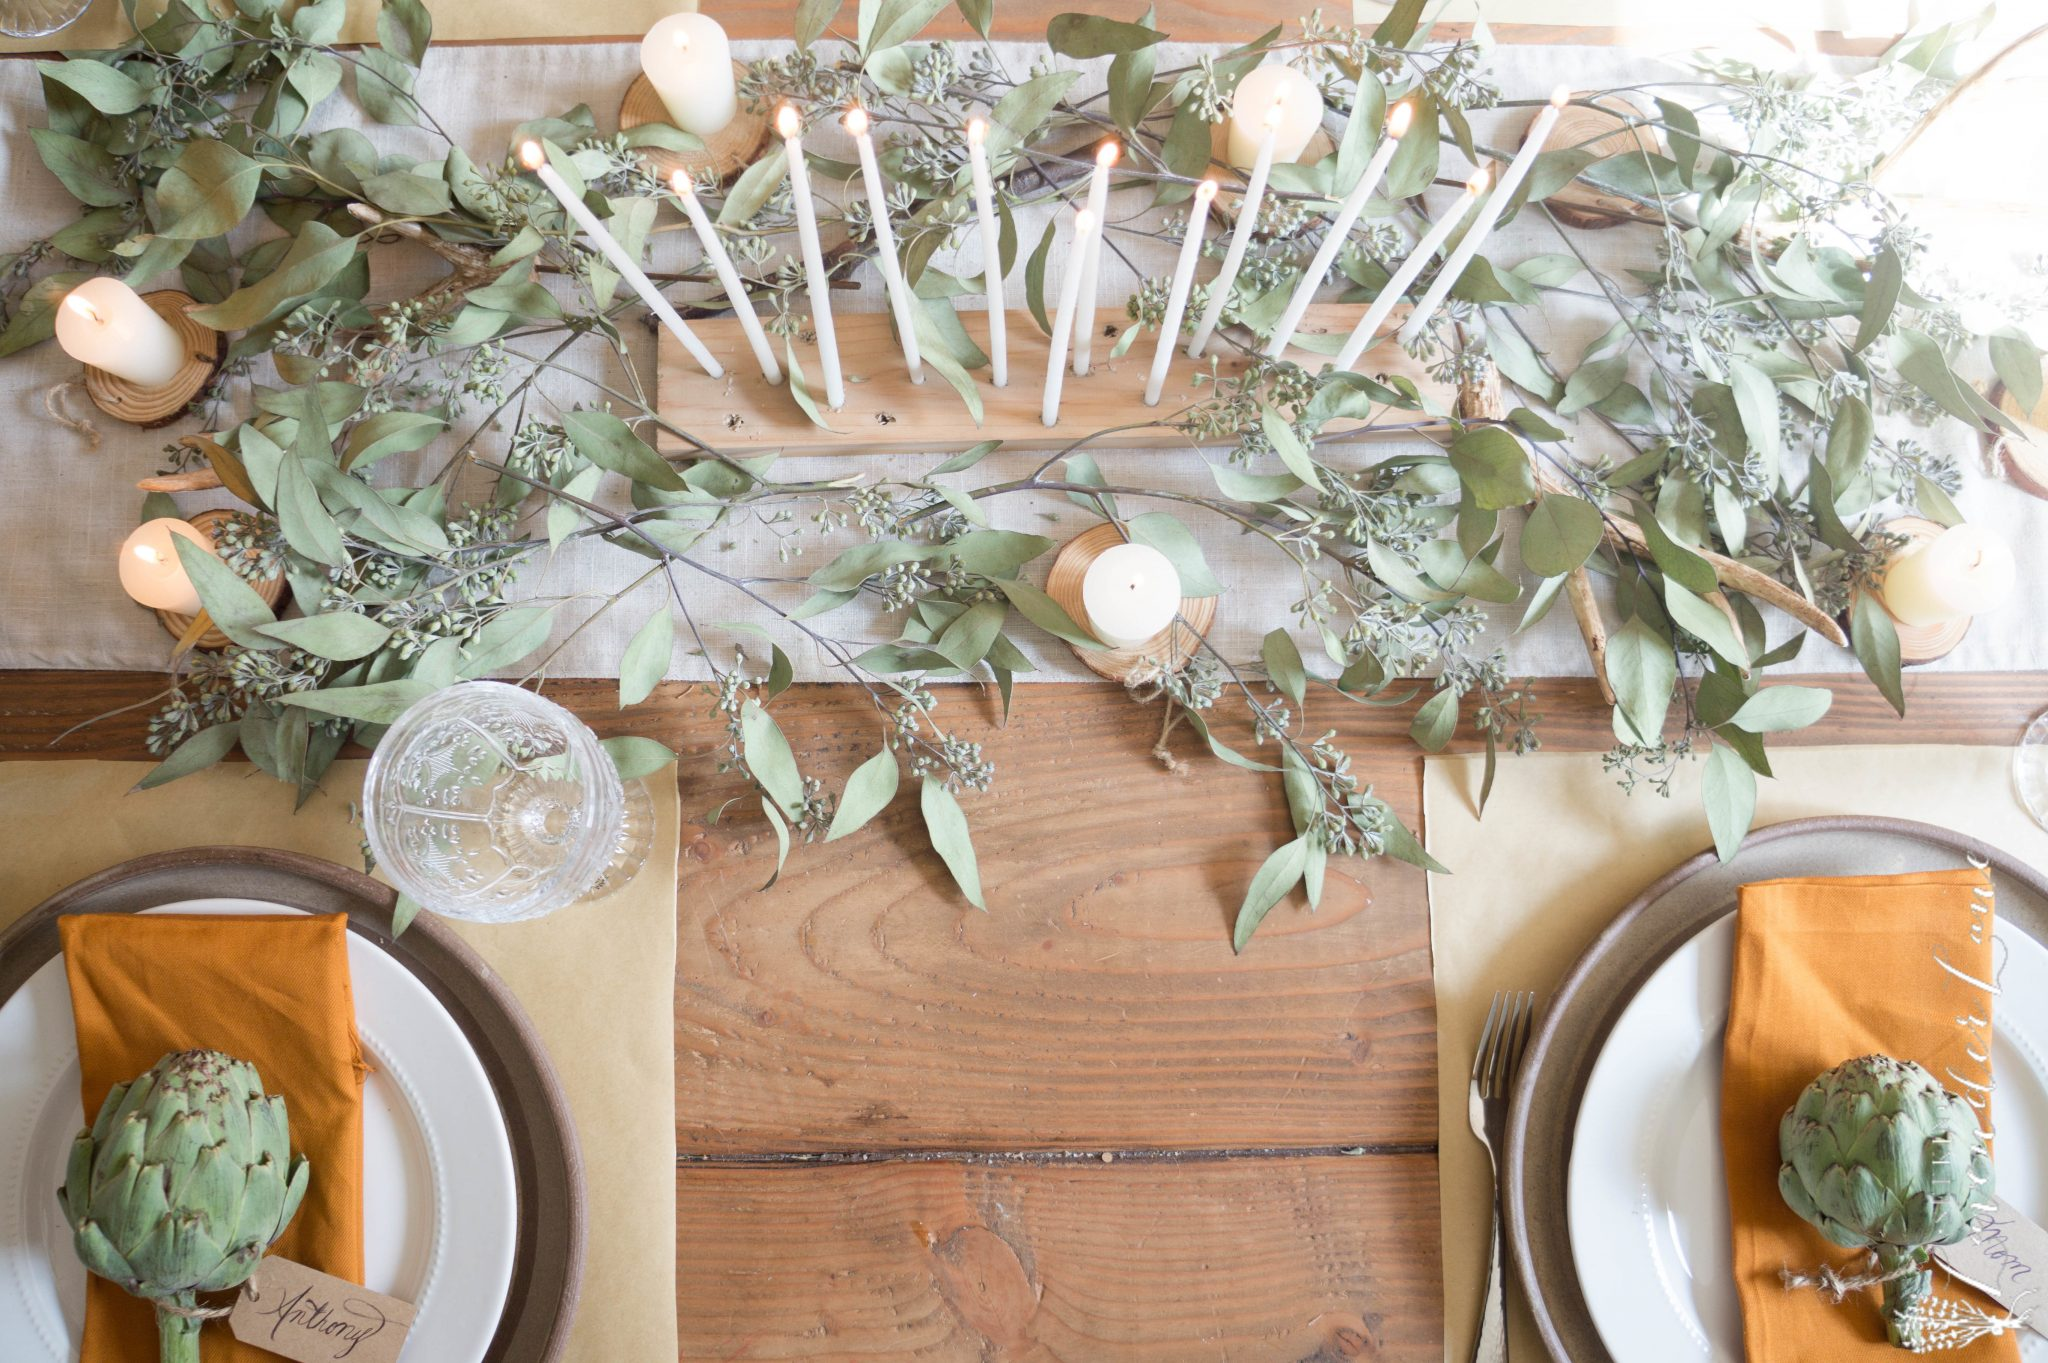 Thanksgiving decorating ideas for your holiday table!